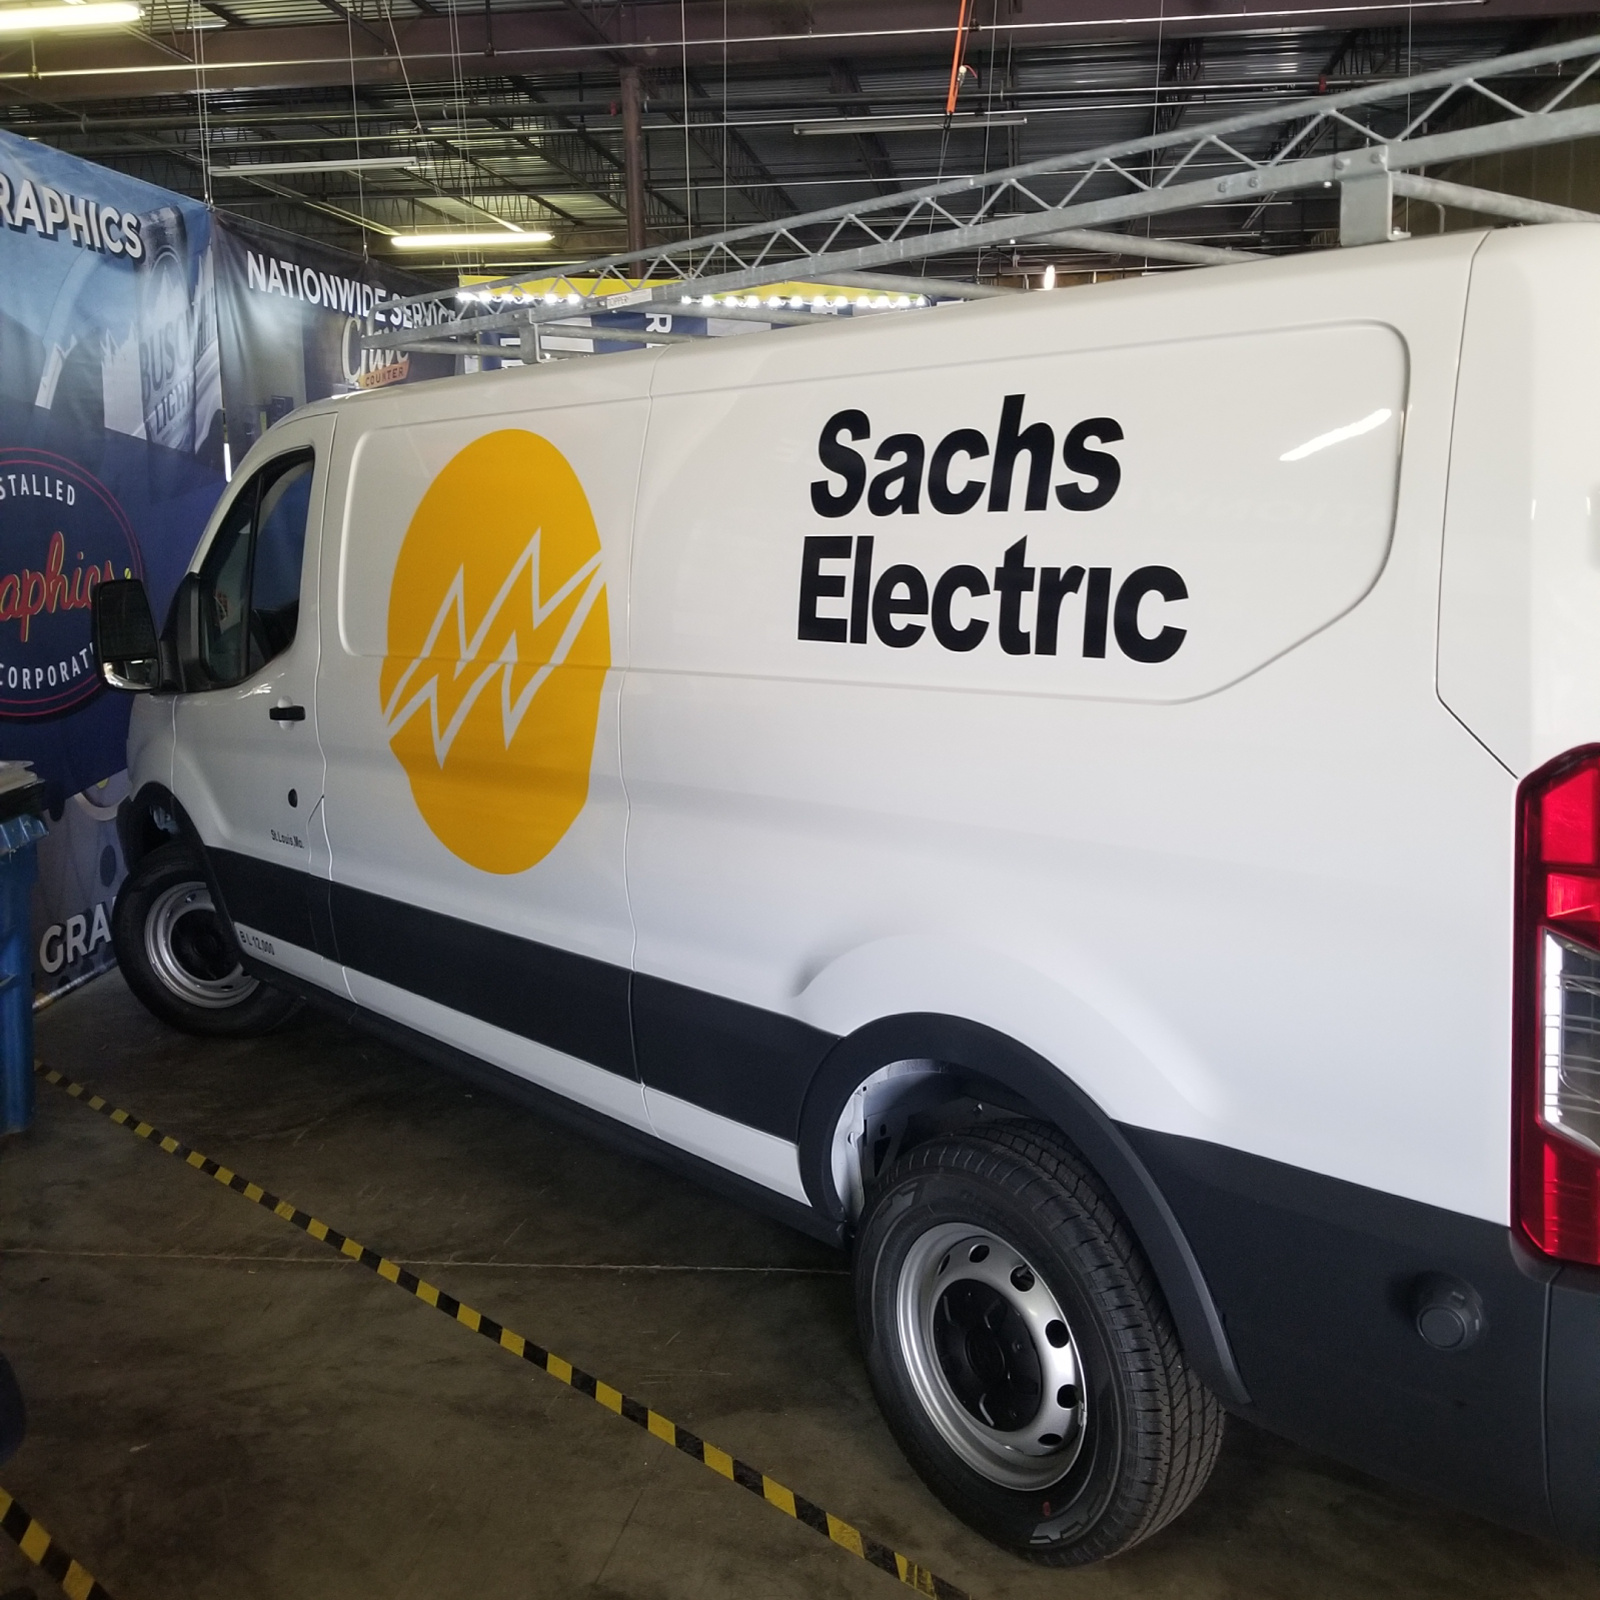 Sachs Electric Fleet Graphics…